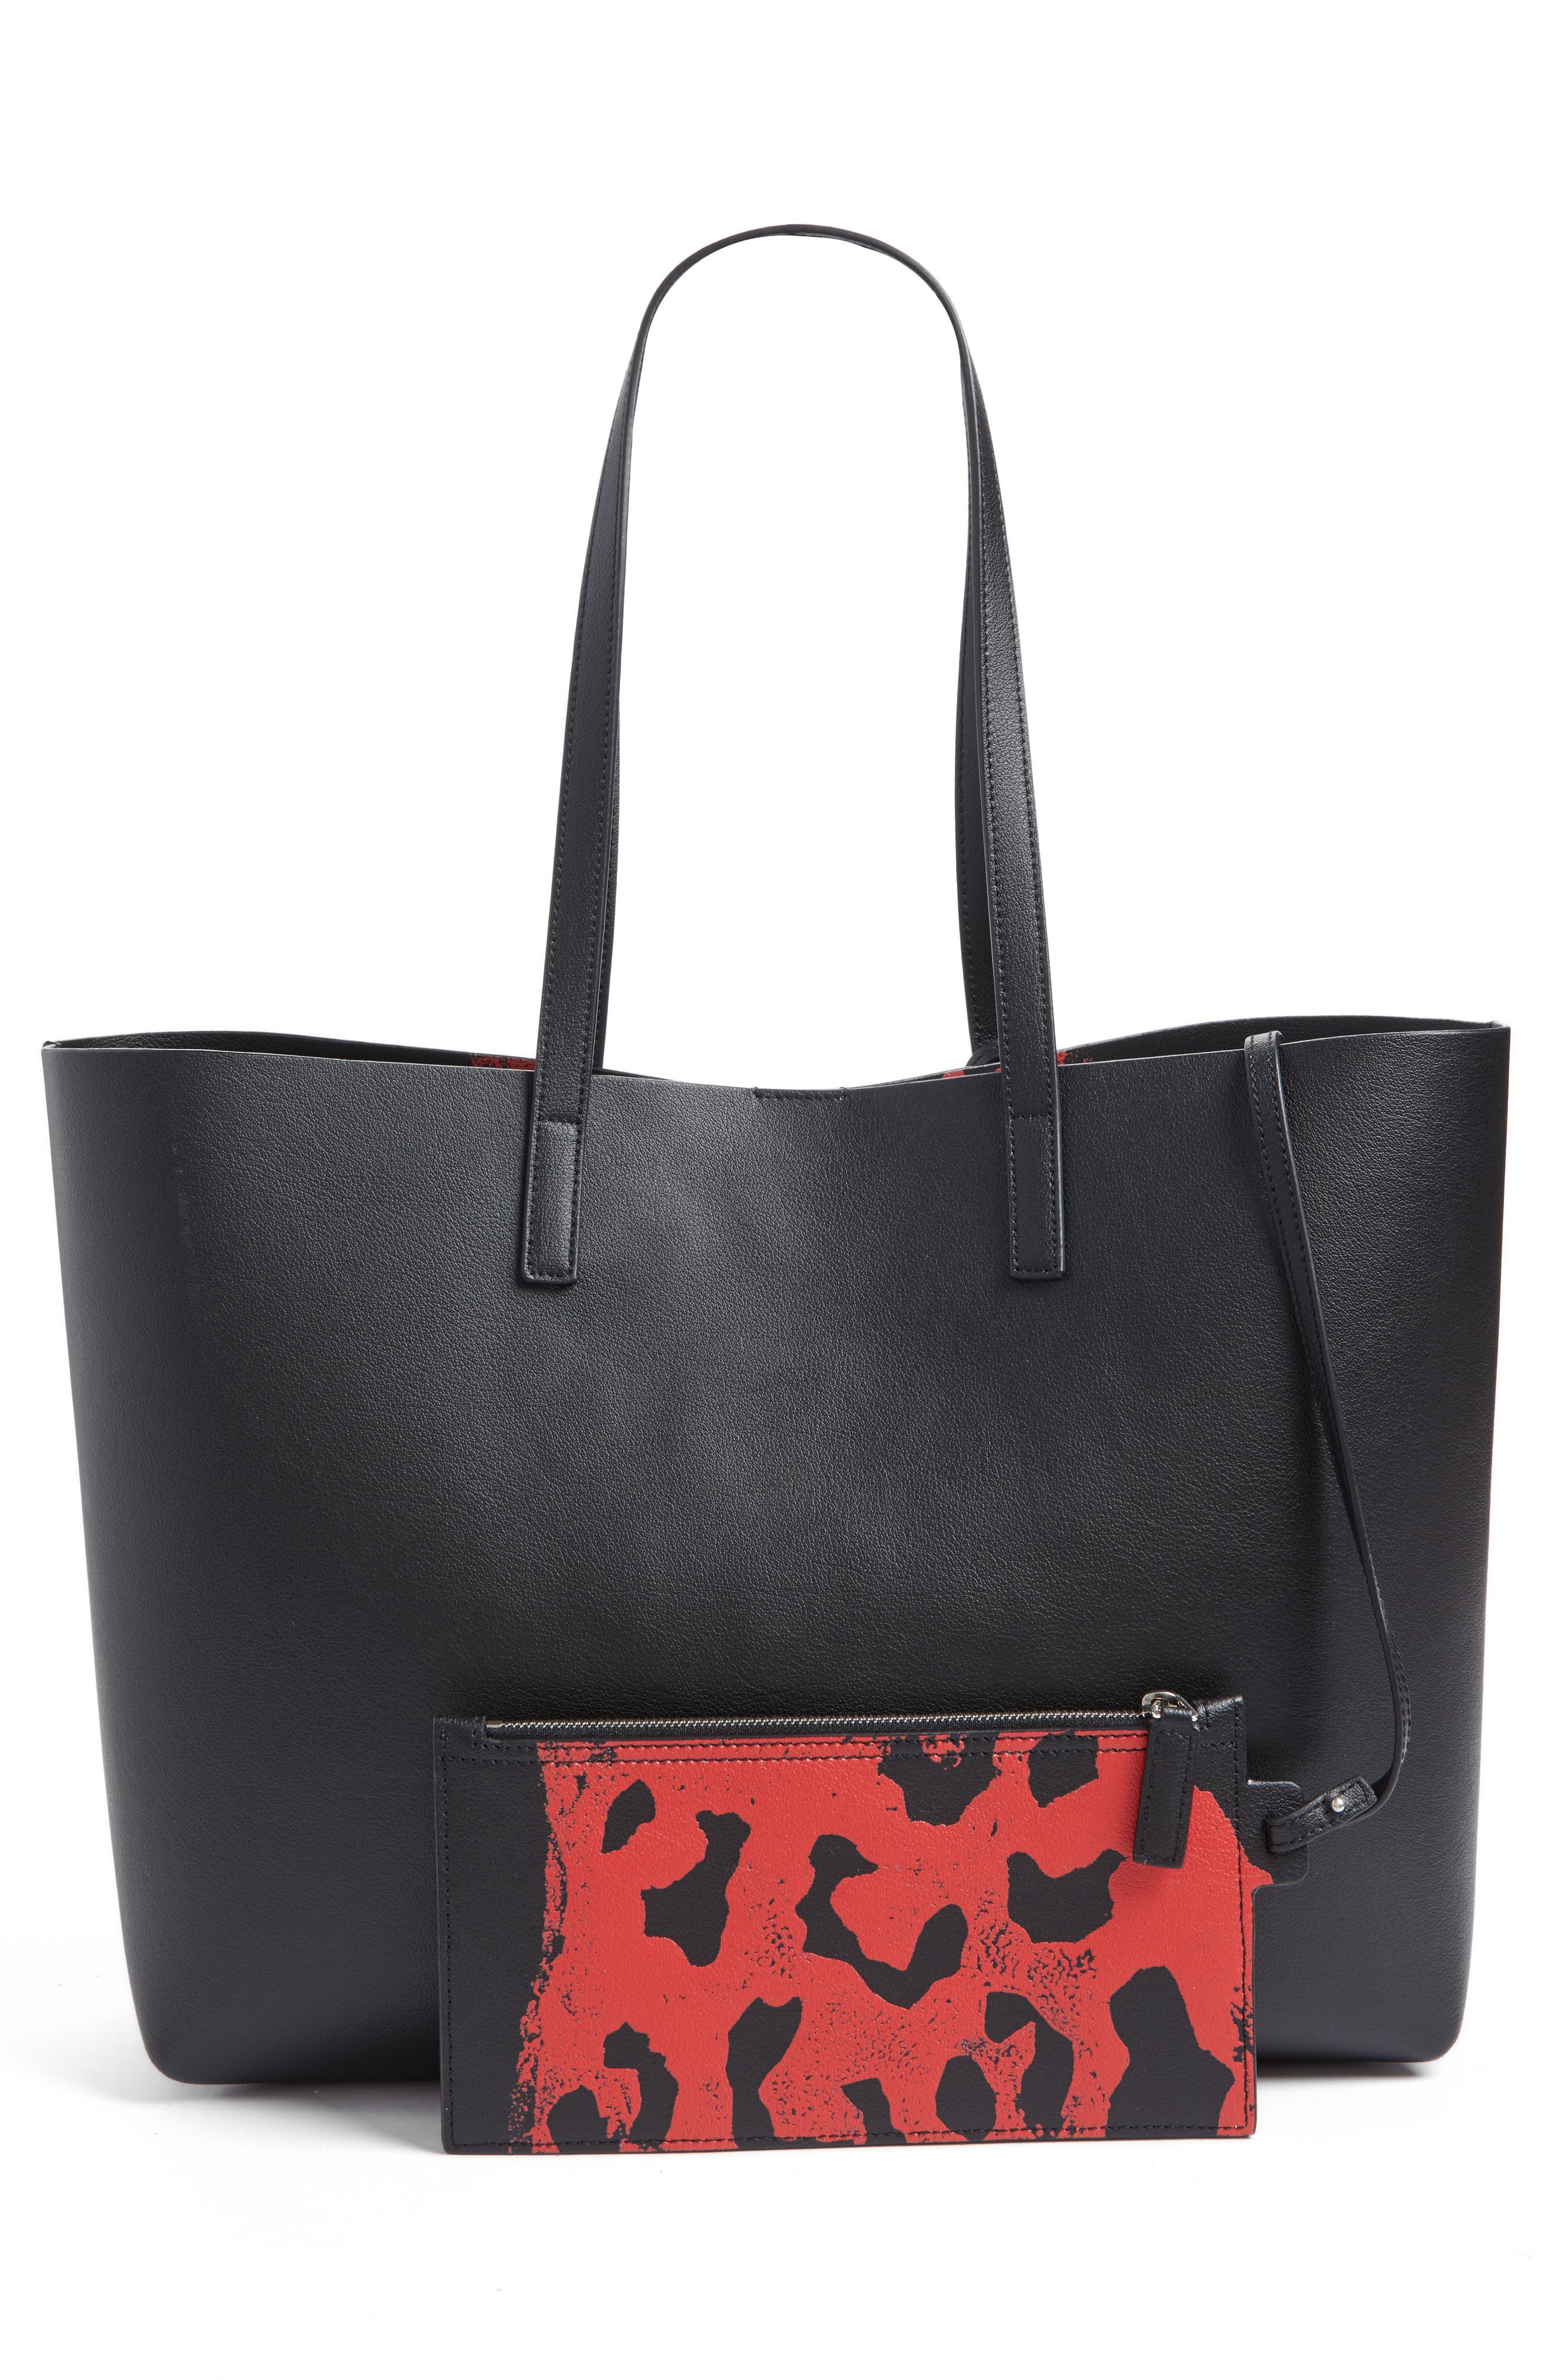 East/West Leather Tote with Leopard Spot Zip Pouch,                             Alternate thumbnail 3, color,                             025